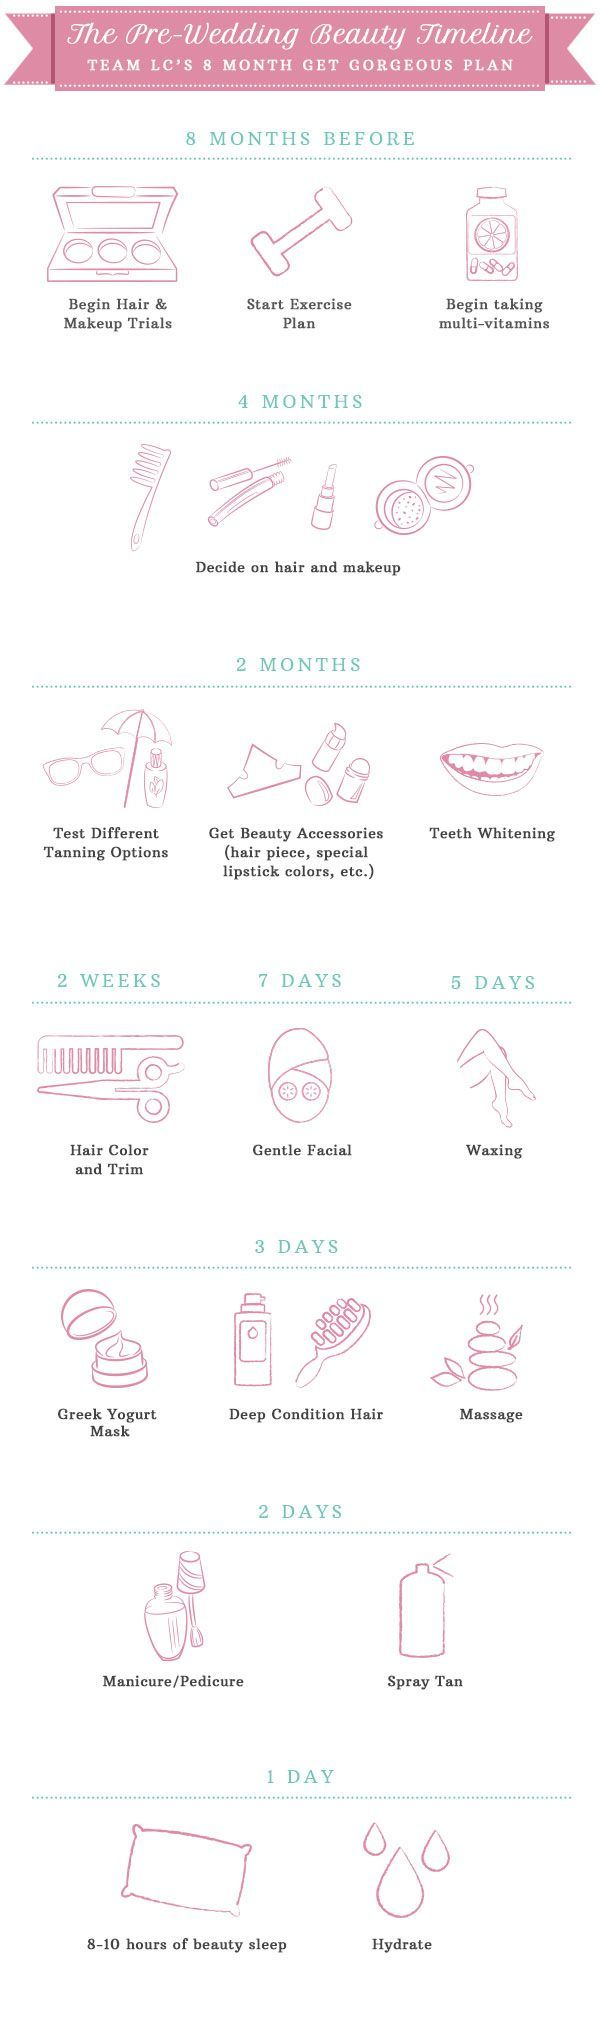 Wedding Bells: The Bridal Beauty Timeline